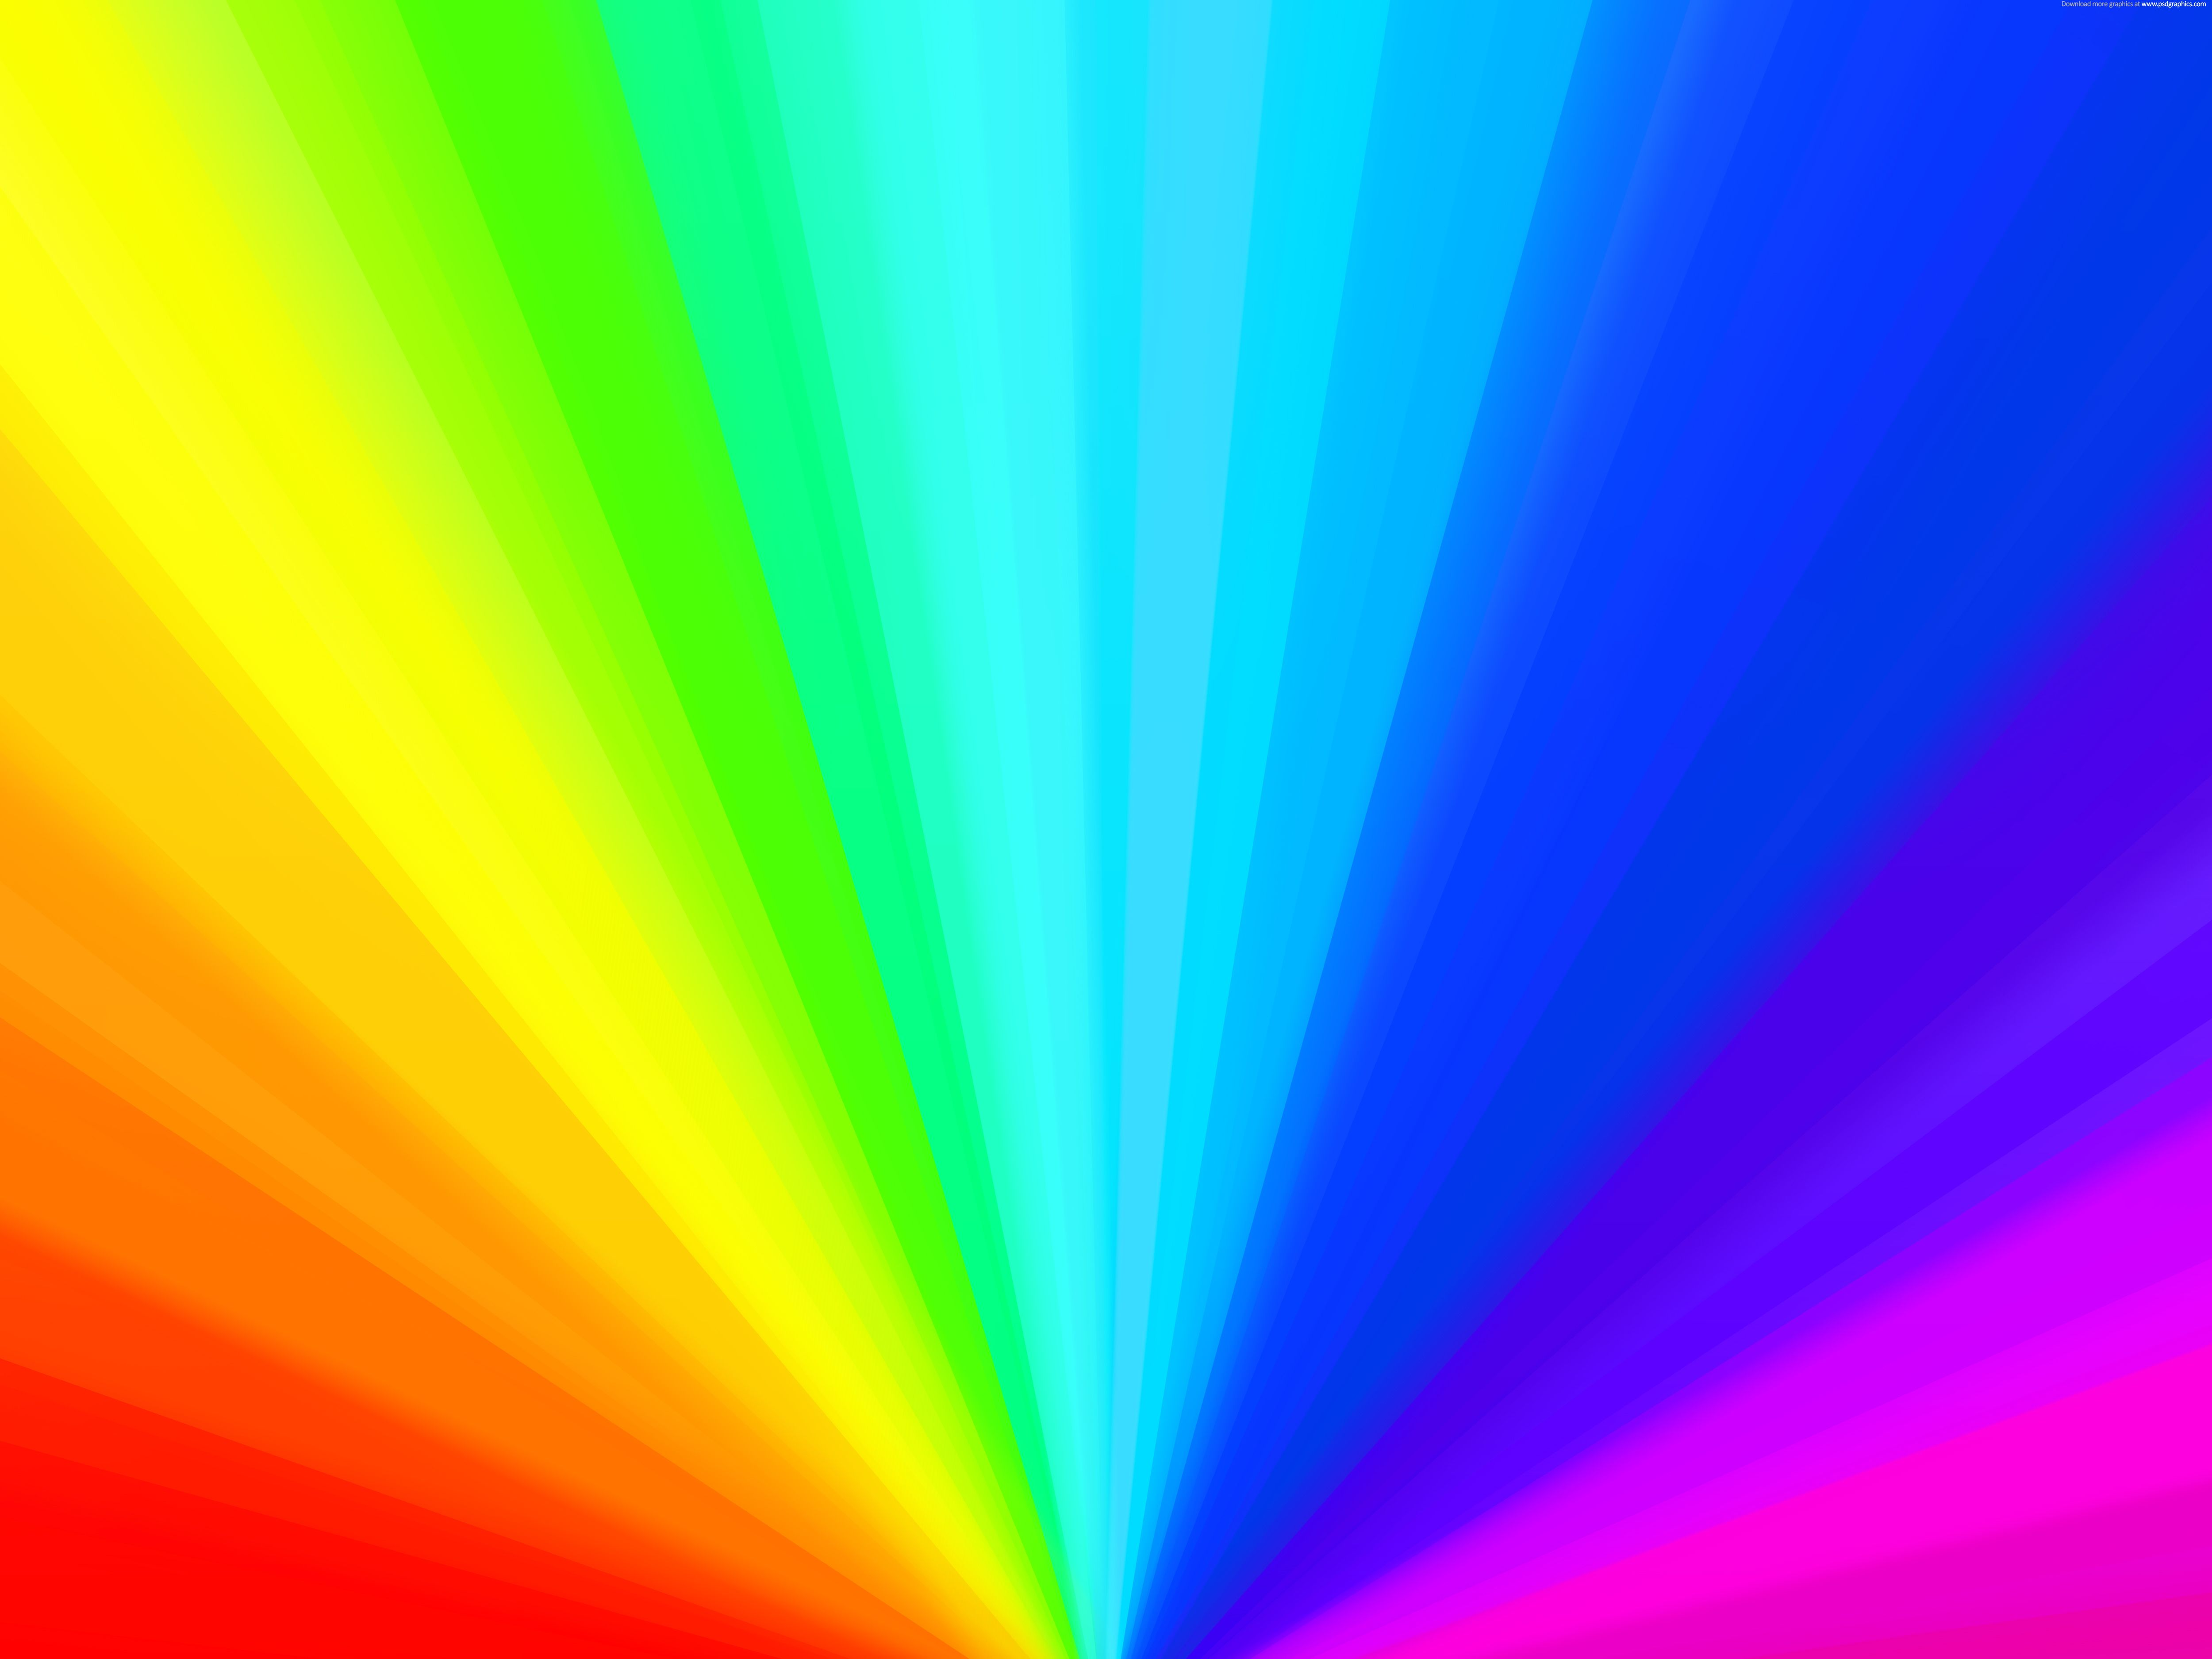 Rainbow Rainbow background, Rainbow design, Rainbow pictures